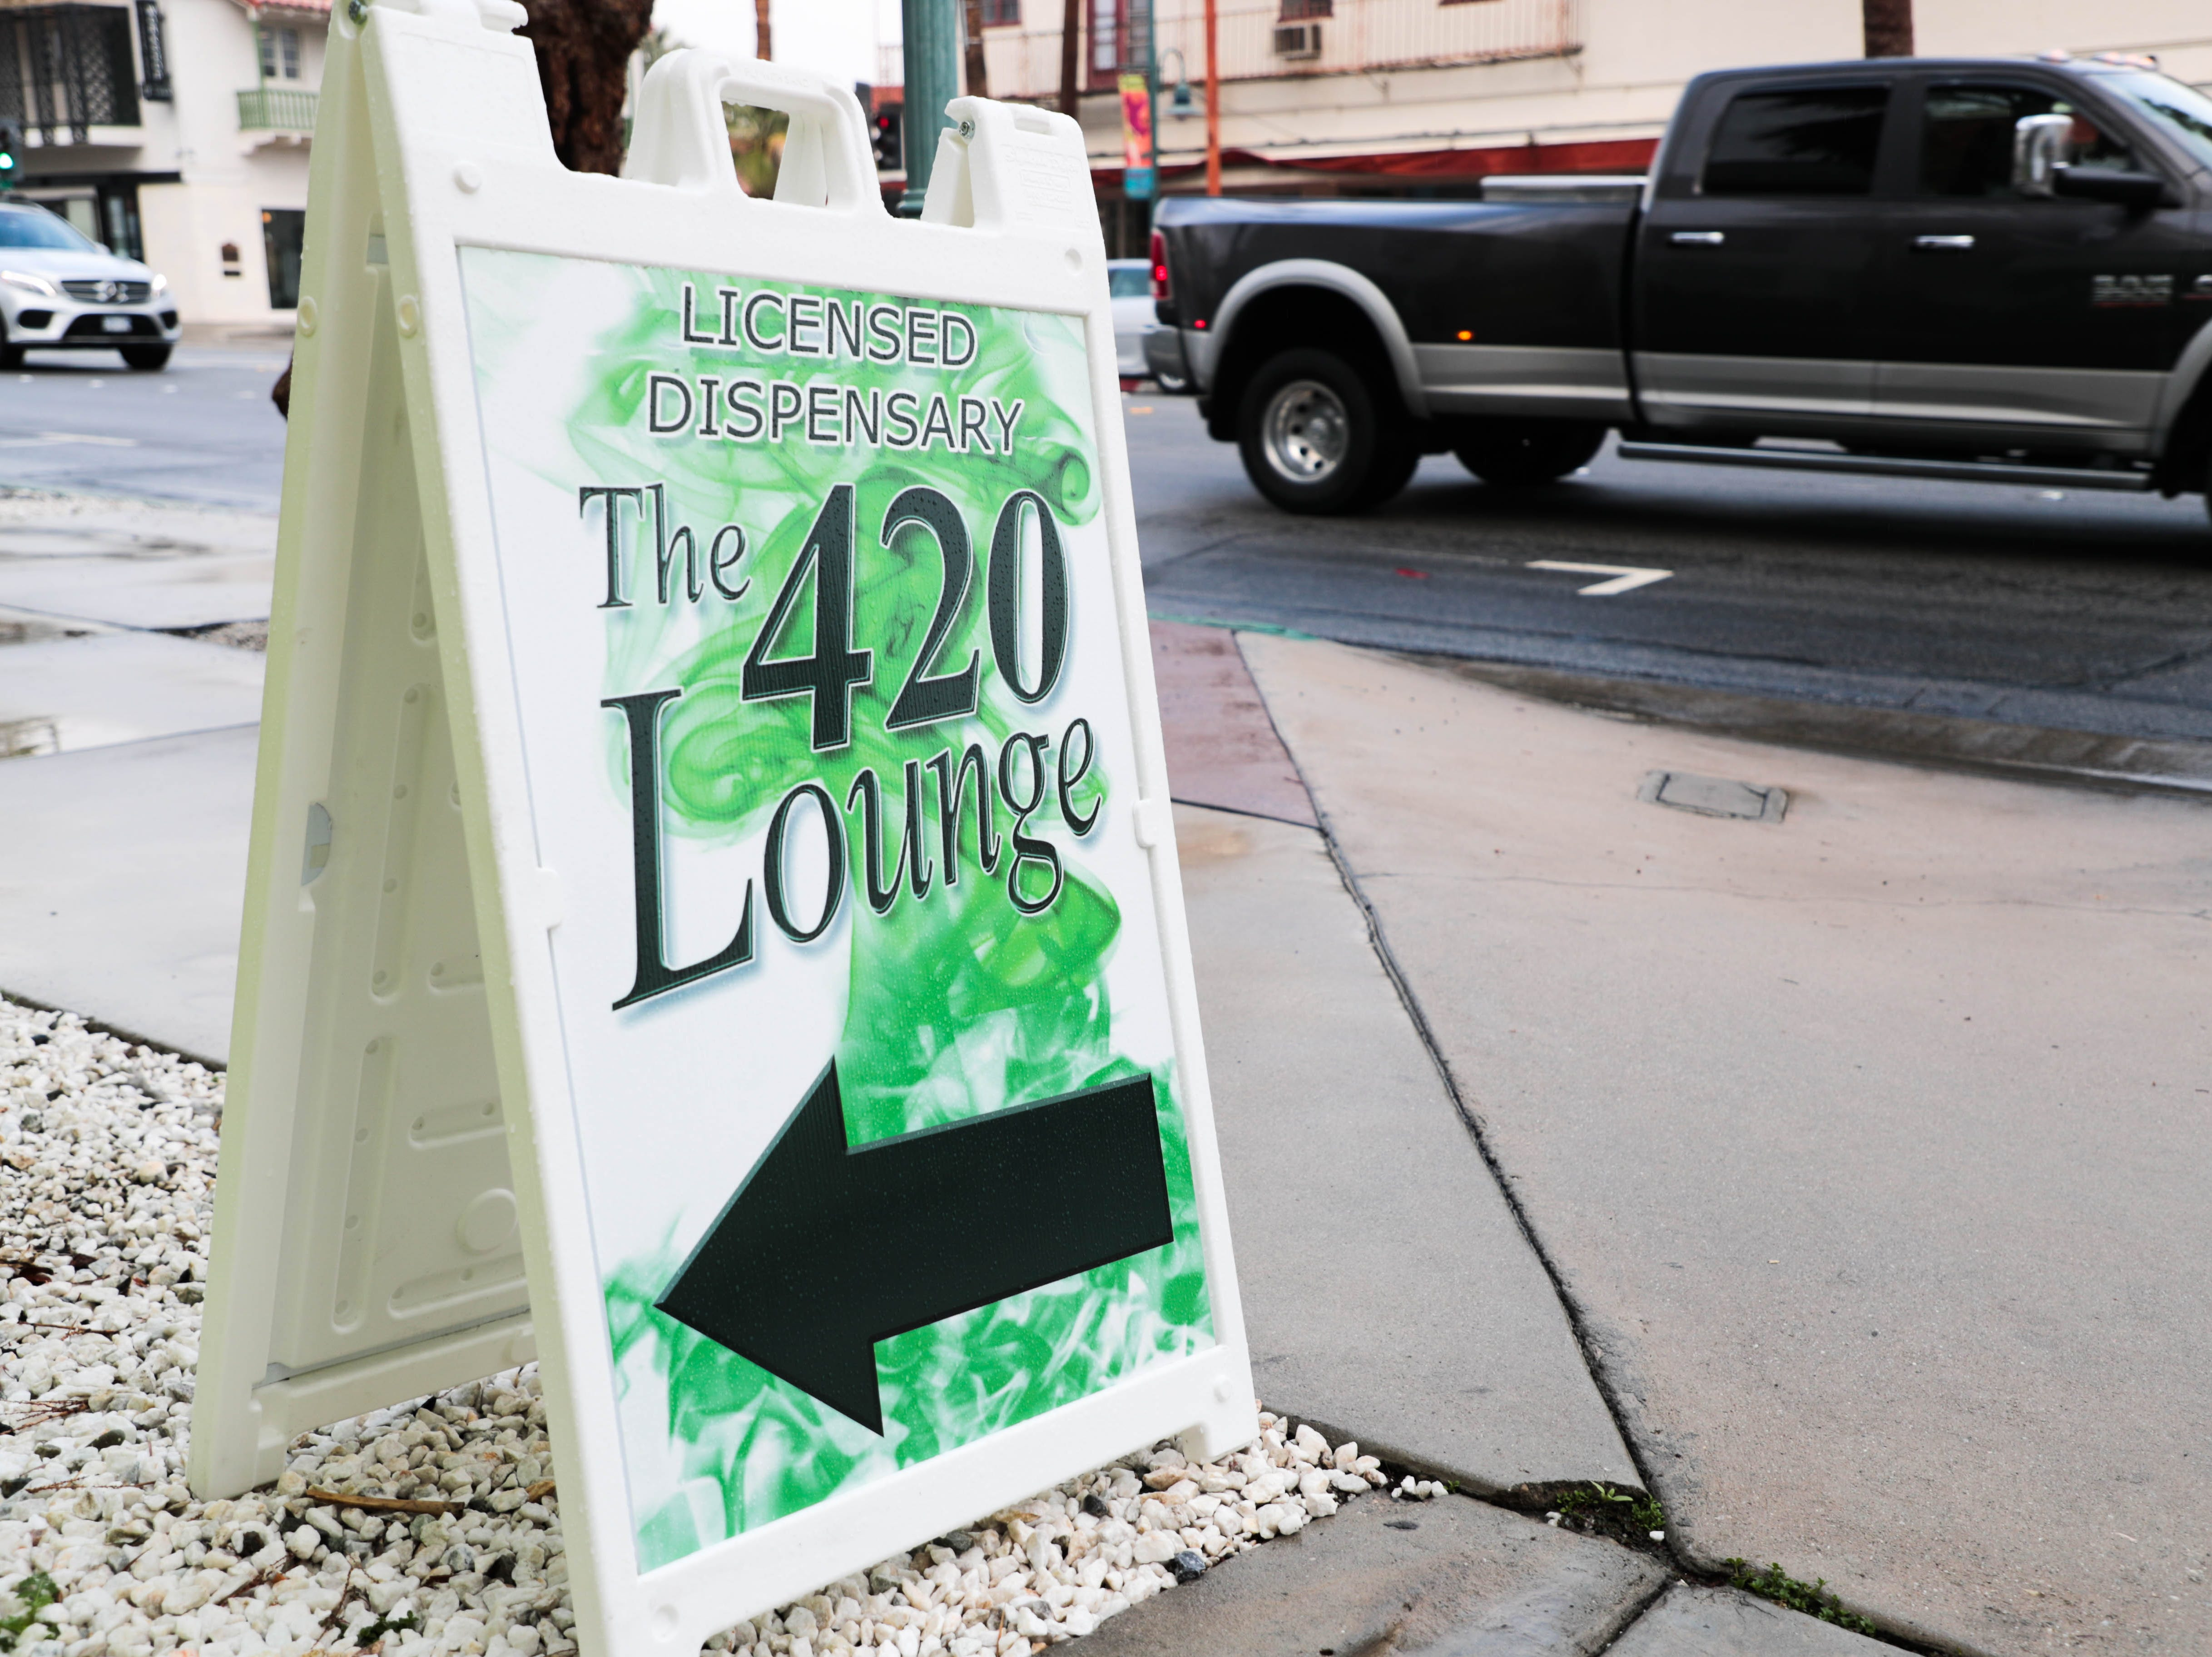 The 420 Lounge is the first legal cannabis smoking lounge in Palm Springs, Calif.